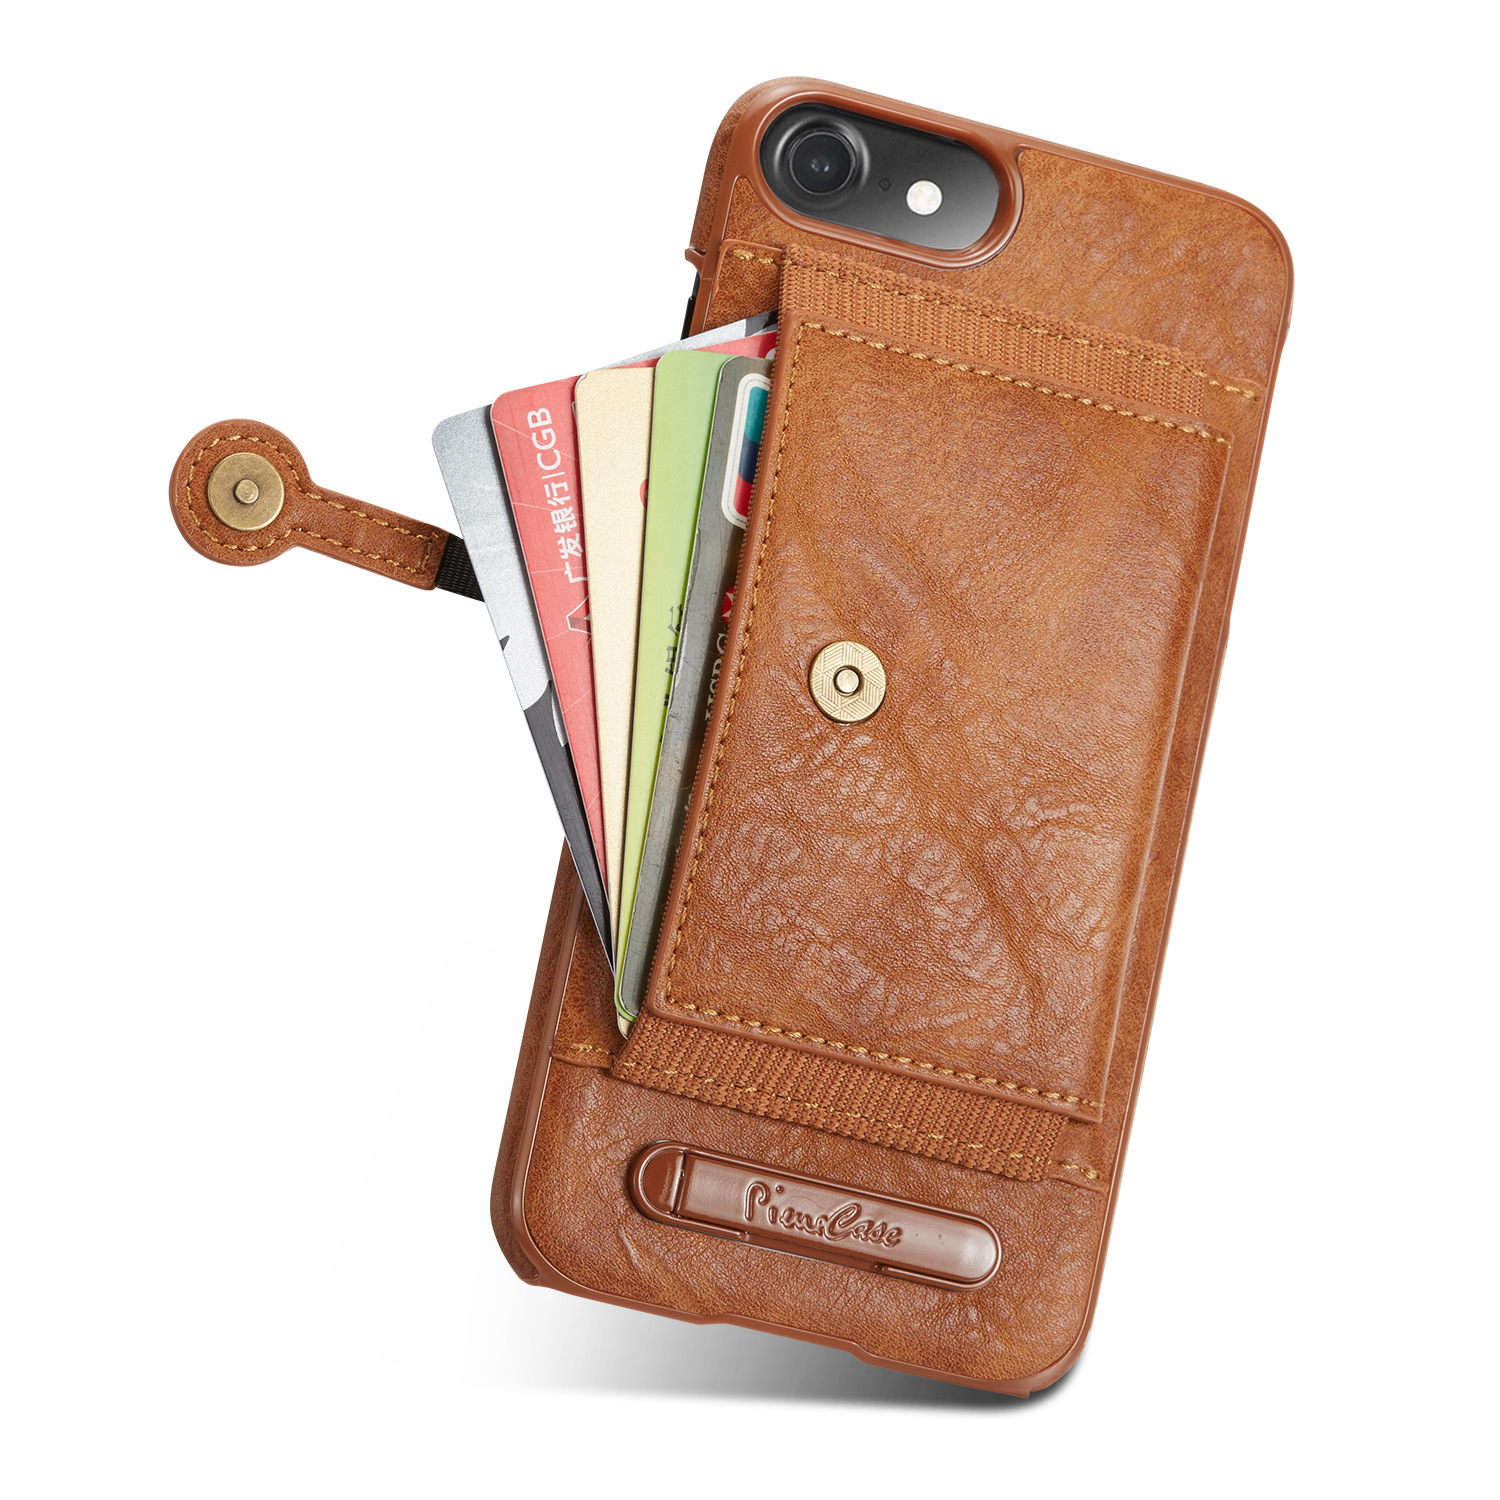 2018 Hot sale business gift good quality cow leather iphone6 case with cards holder